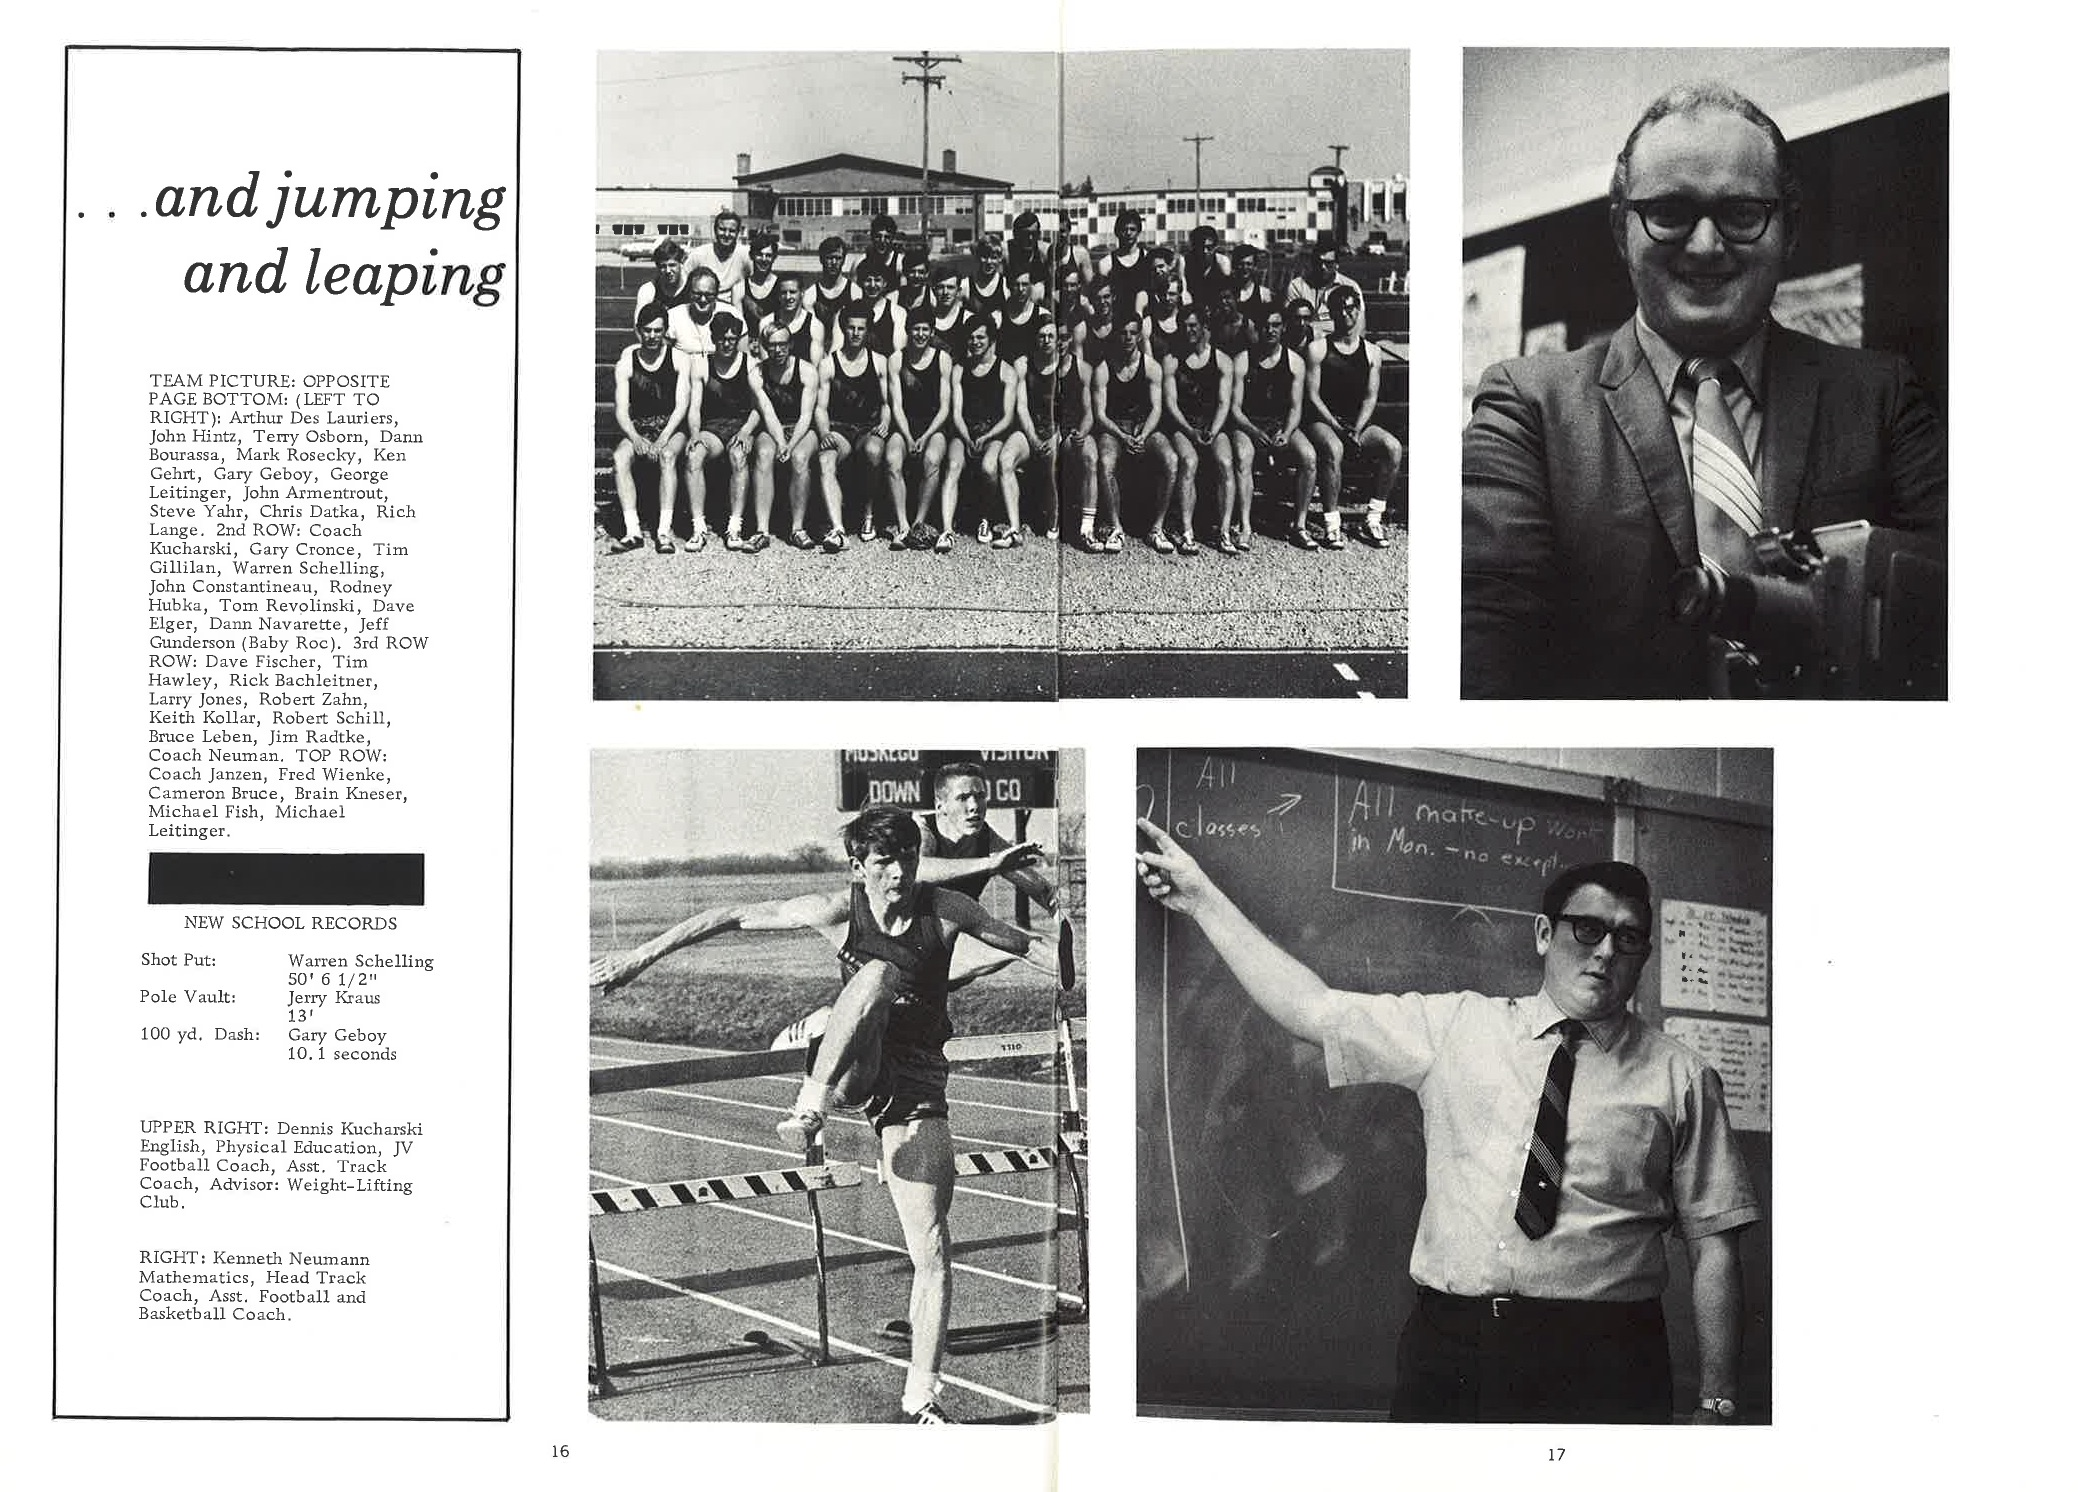 1971_Yearbook_16-17.jpg